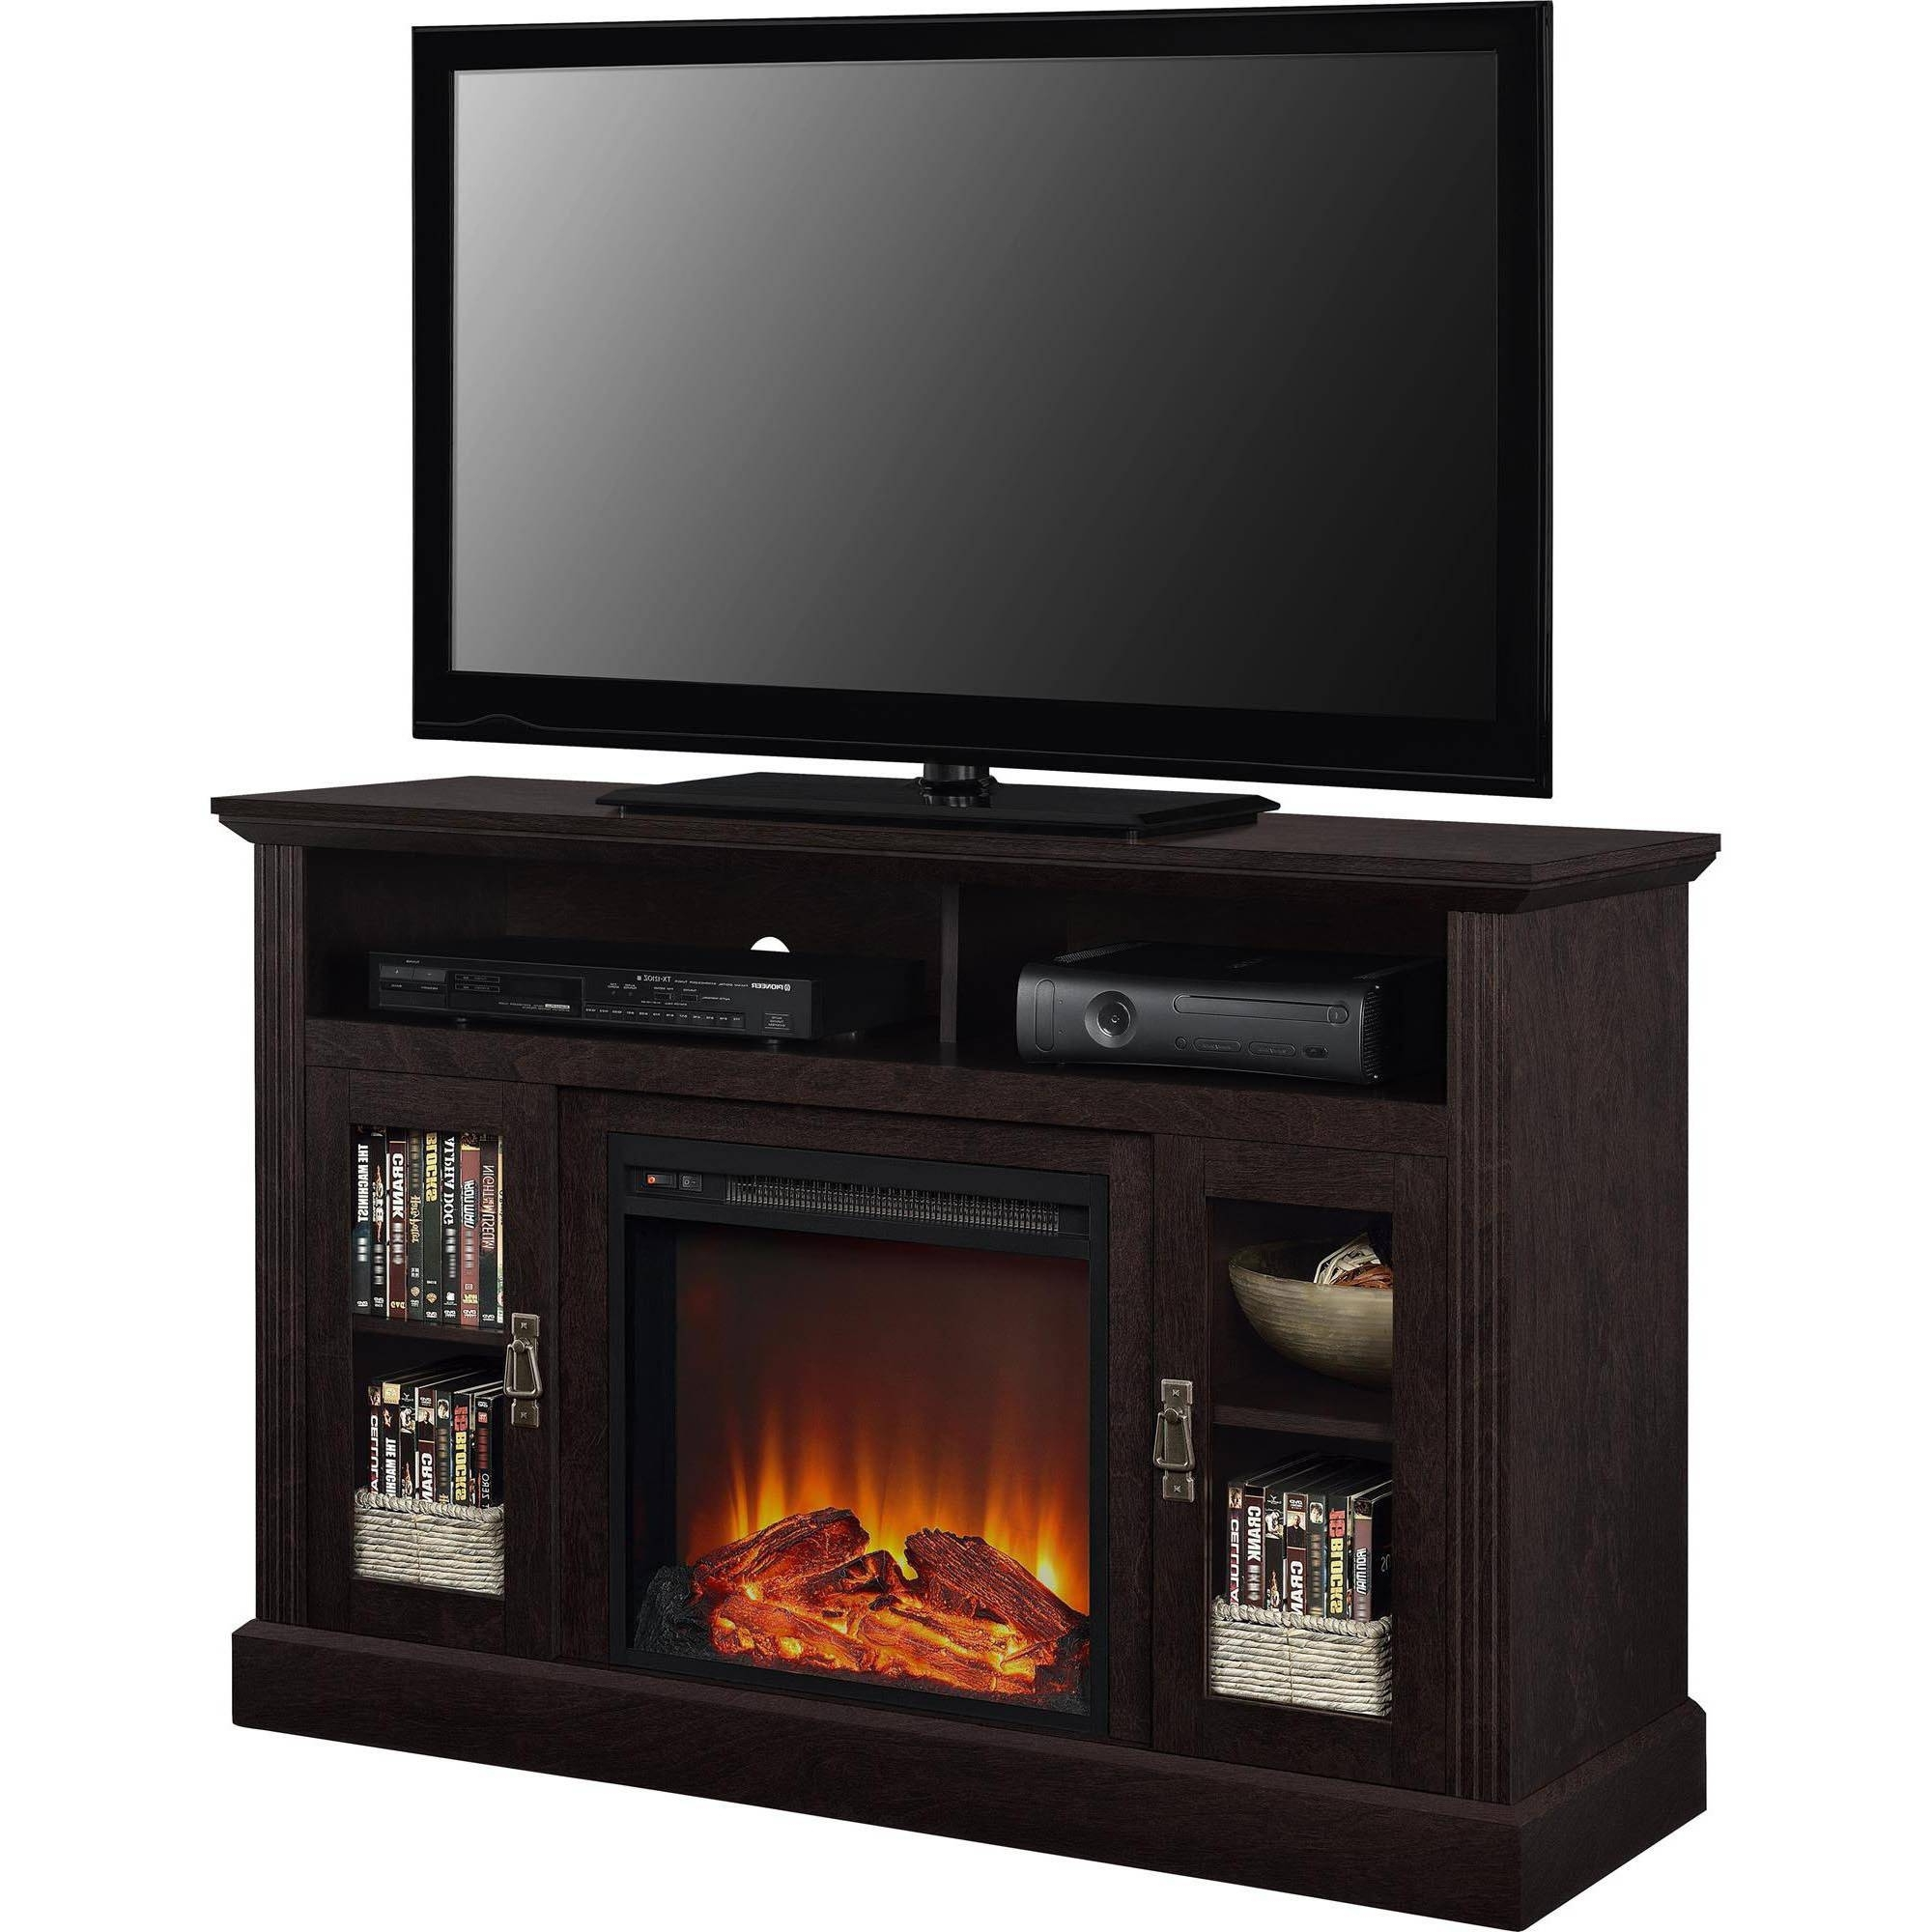 Tv Stand Bookcases Combo Intended For 2018 Fireplace Tv Stands – Walmart (View 12 of 15)